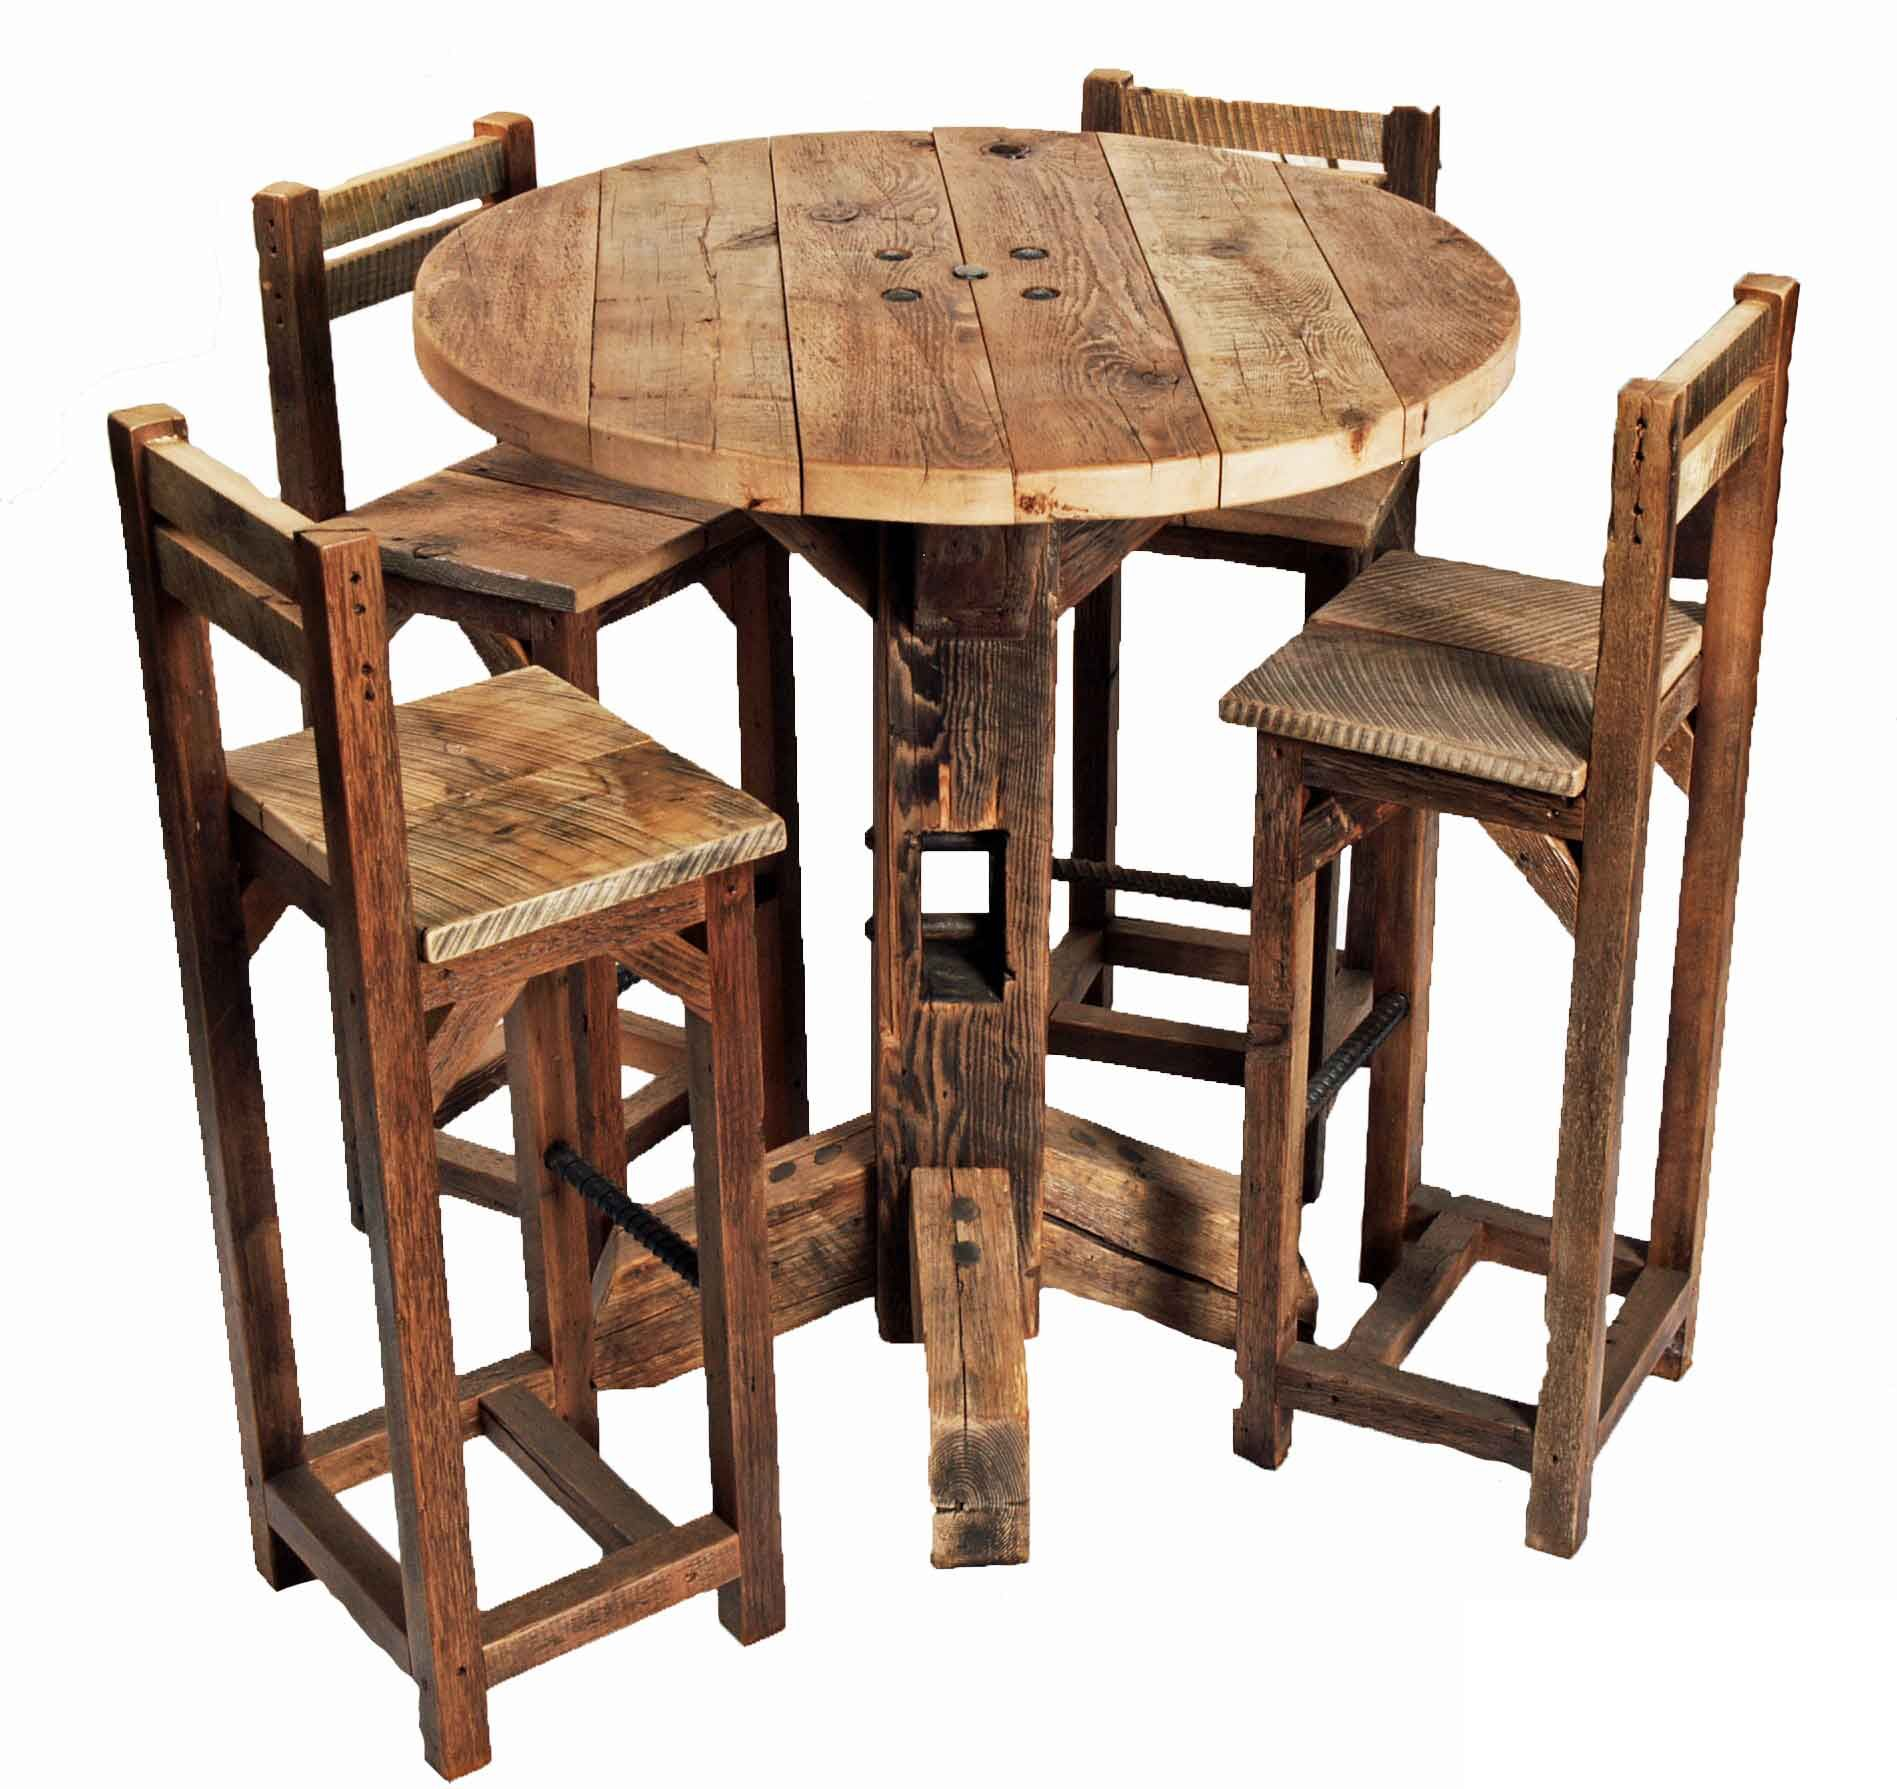 Wooden Kitchen Table Set Furniture Old Rustic Small High Round Top Kitchen Table And Chair